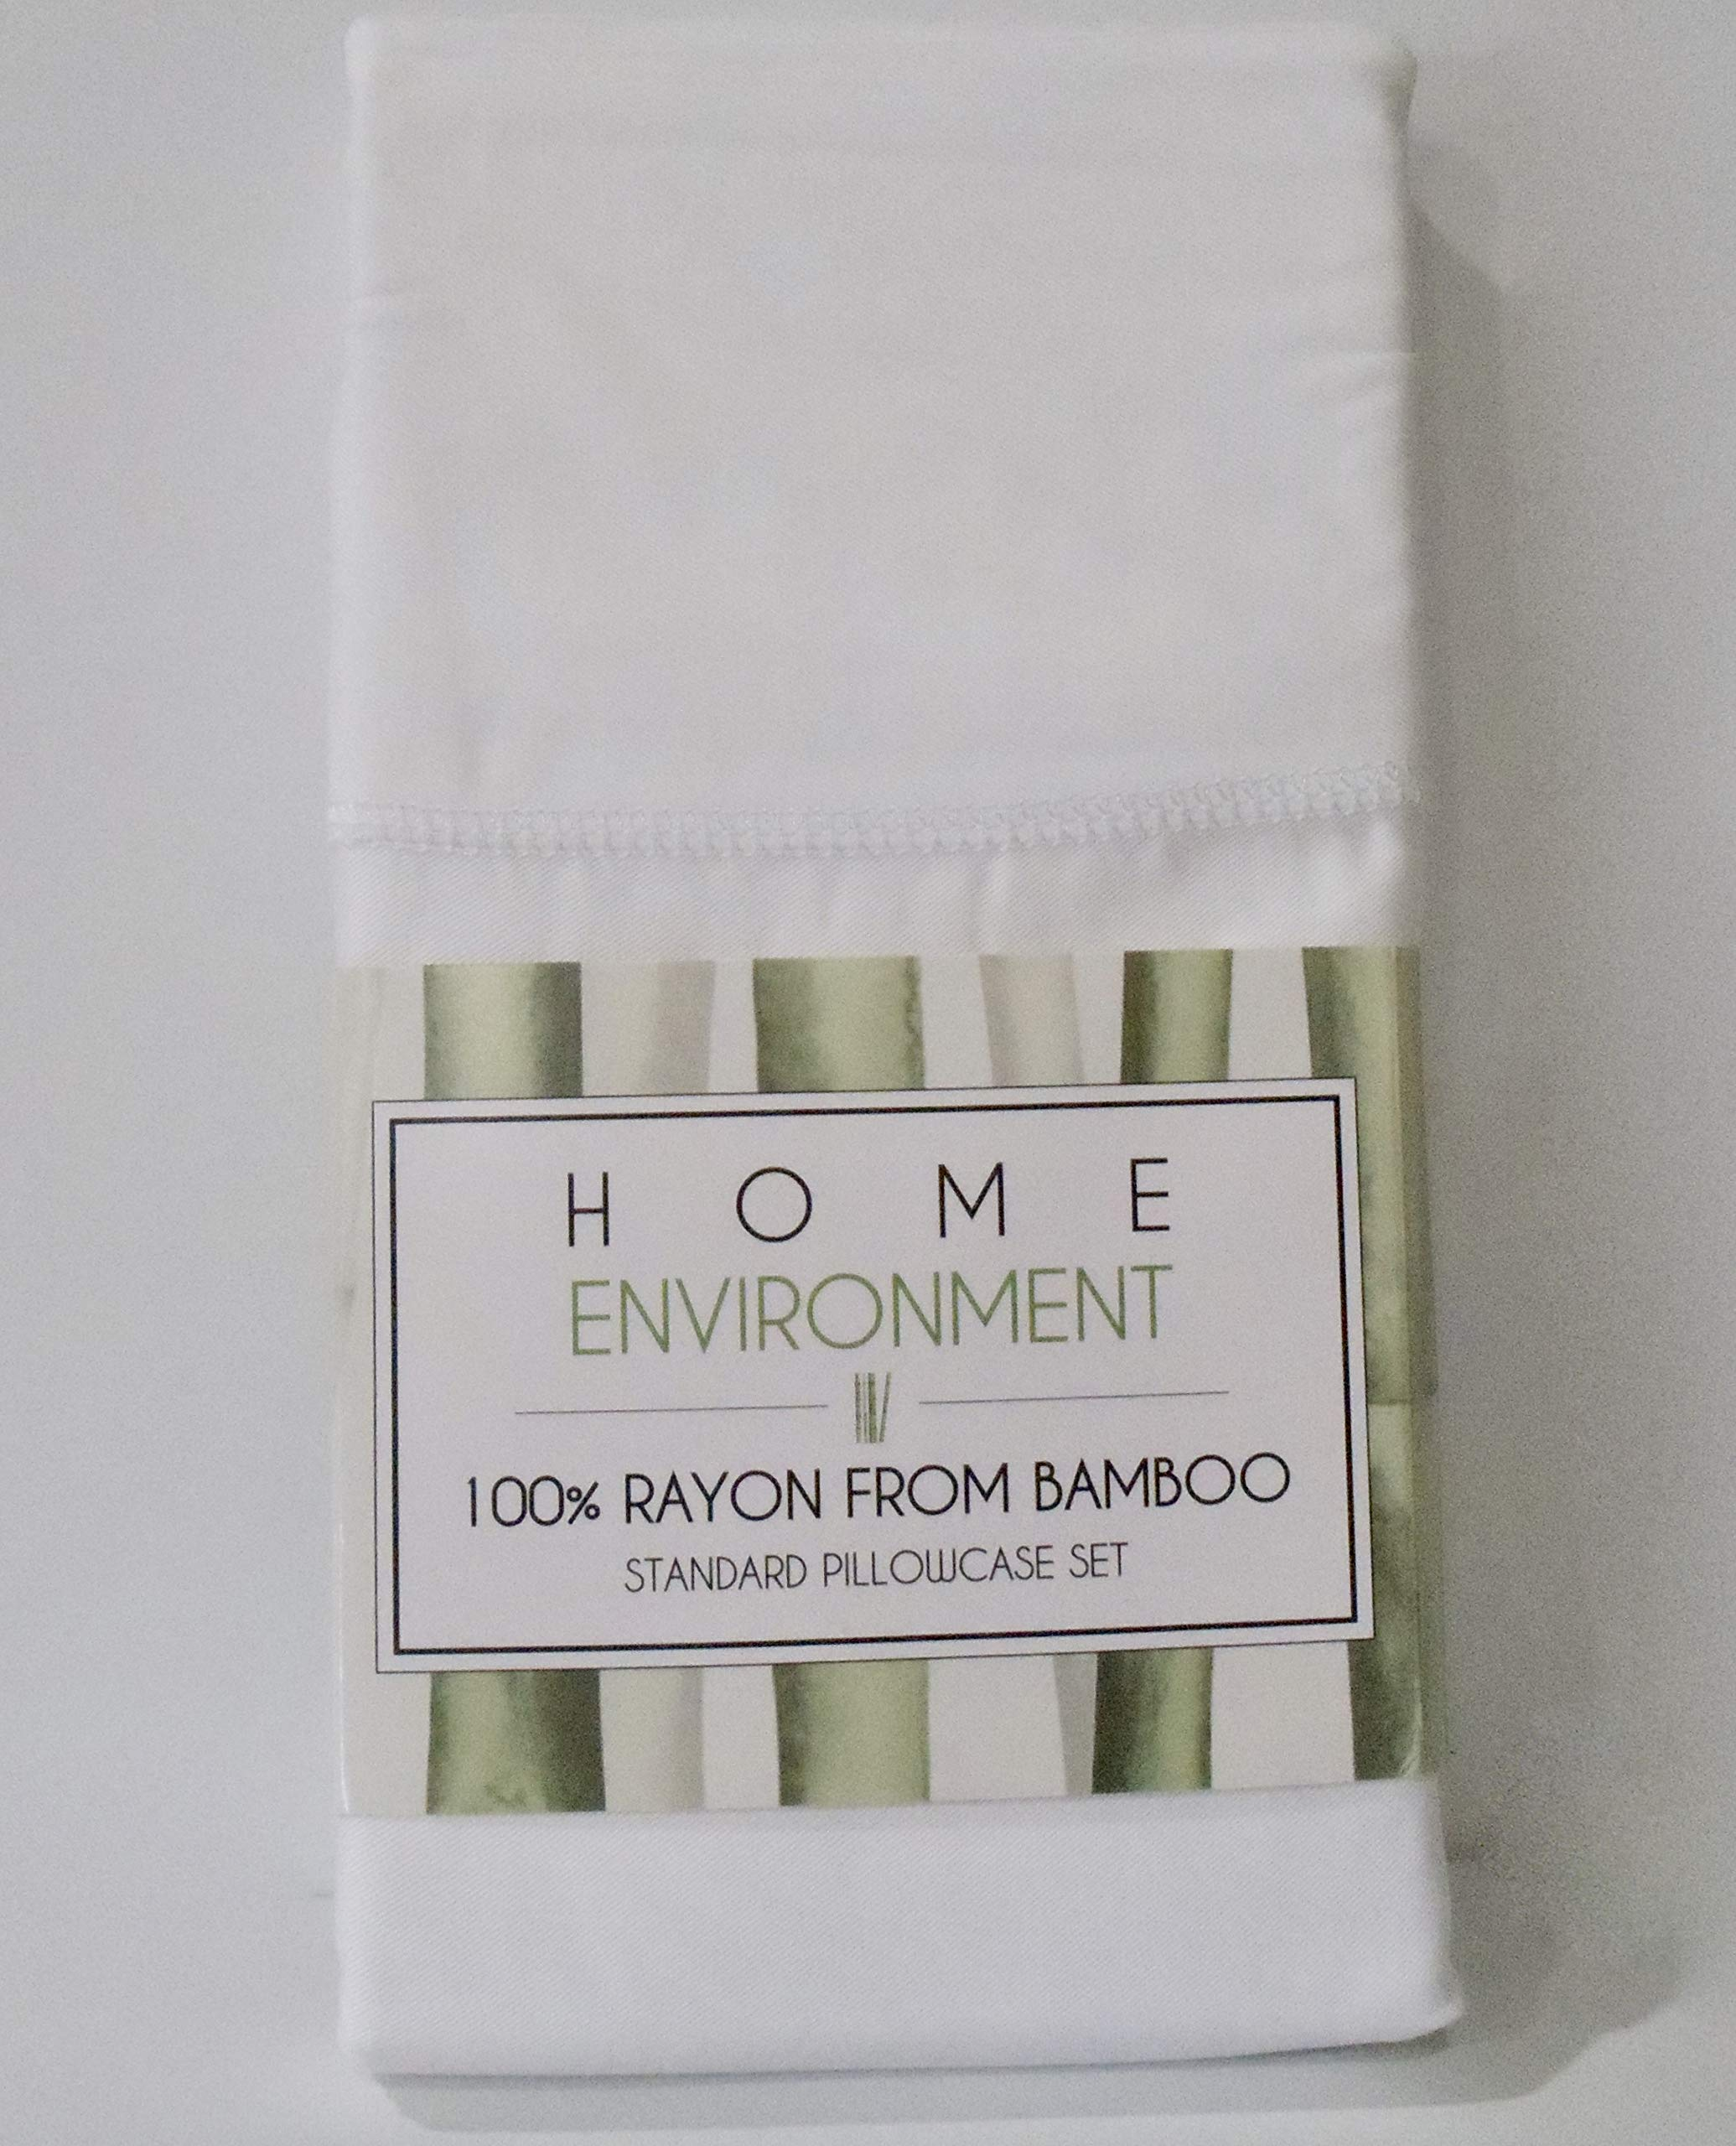 Home Environment Premium Rayon Bamboo (2) Standard Pillowcases Wonderfully Soft in White